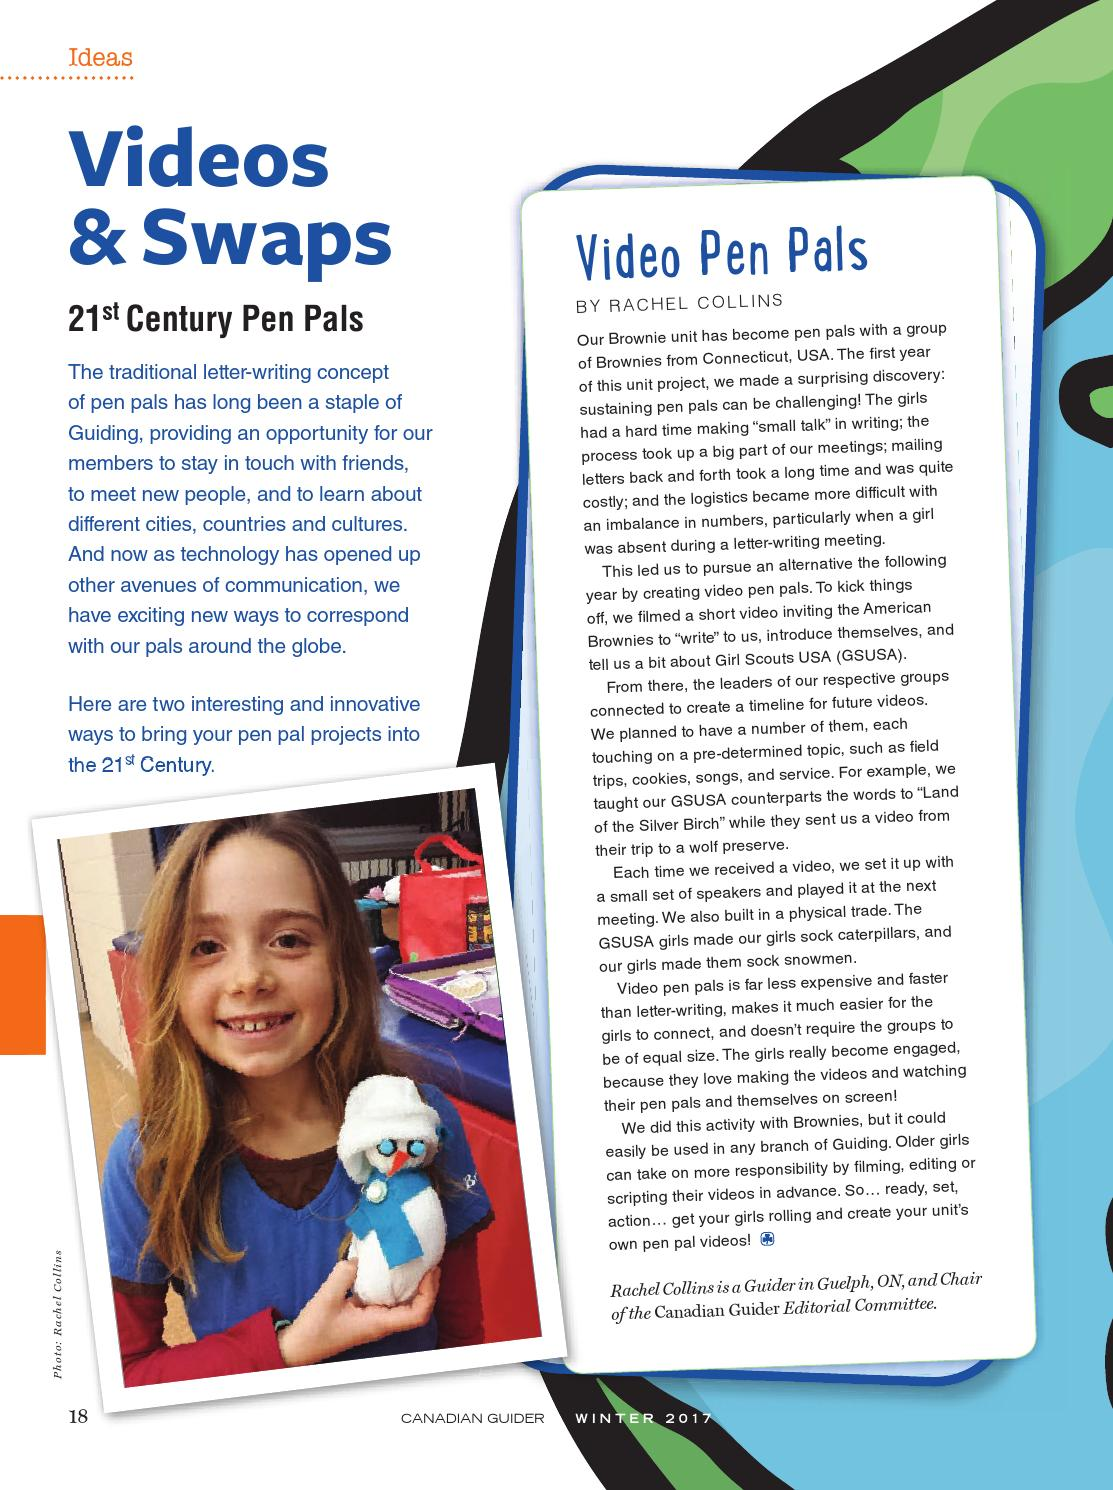 Canadian GuiderWinter 2017 by Canadian Guider: Girl Guides